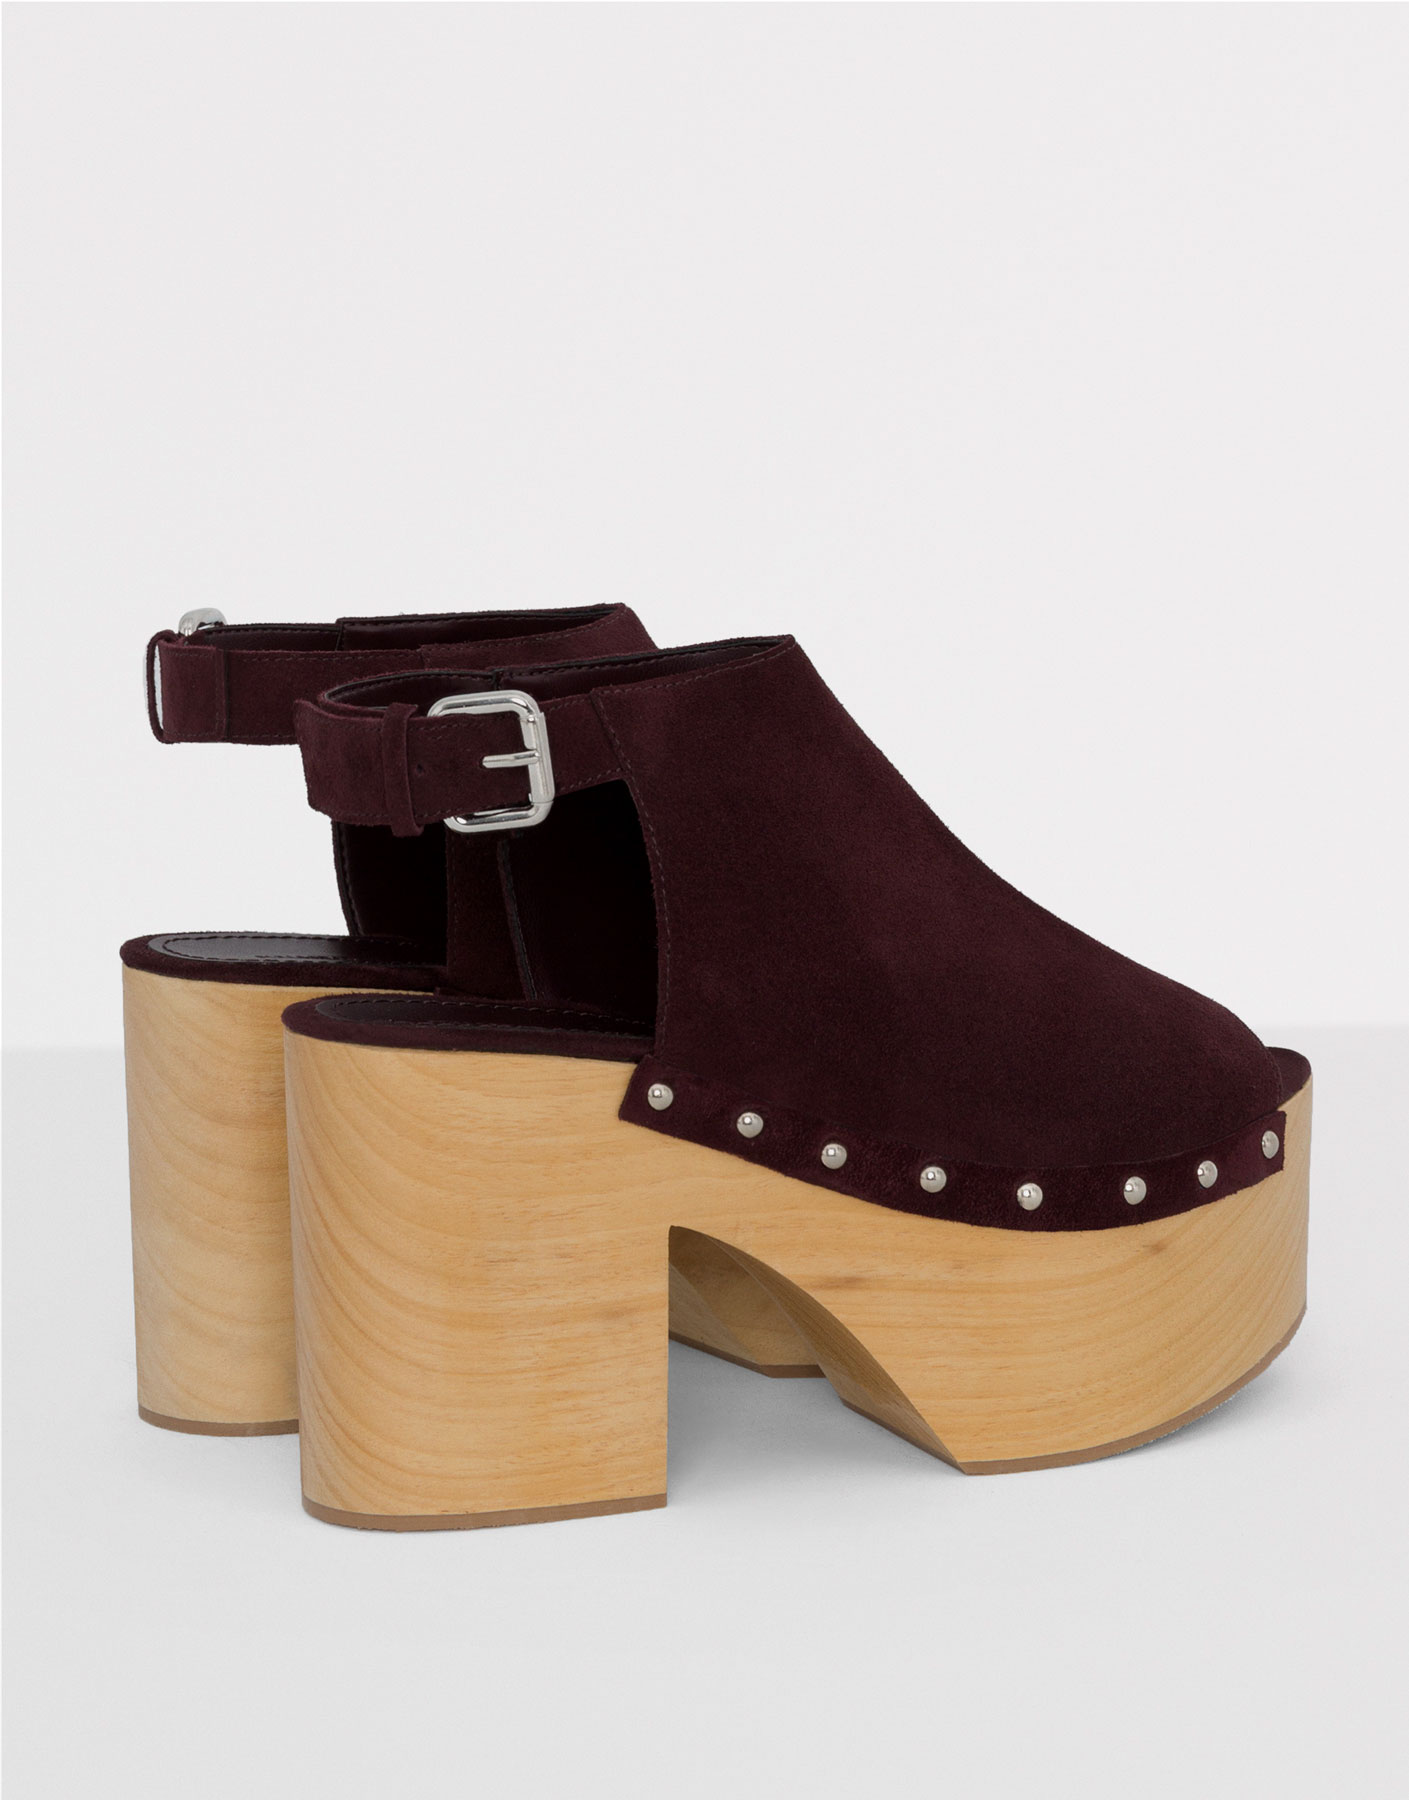 Burgundy leather mules with wooden heel